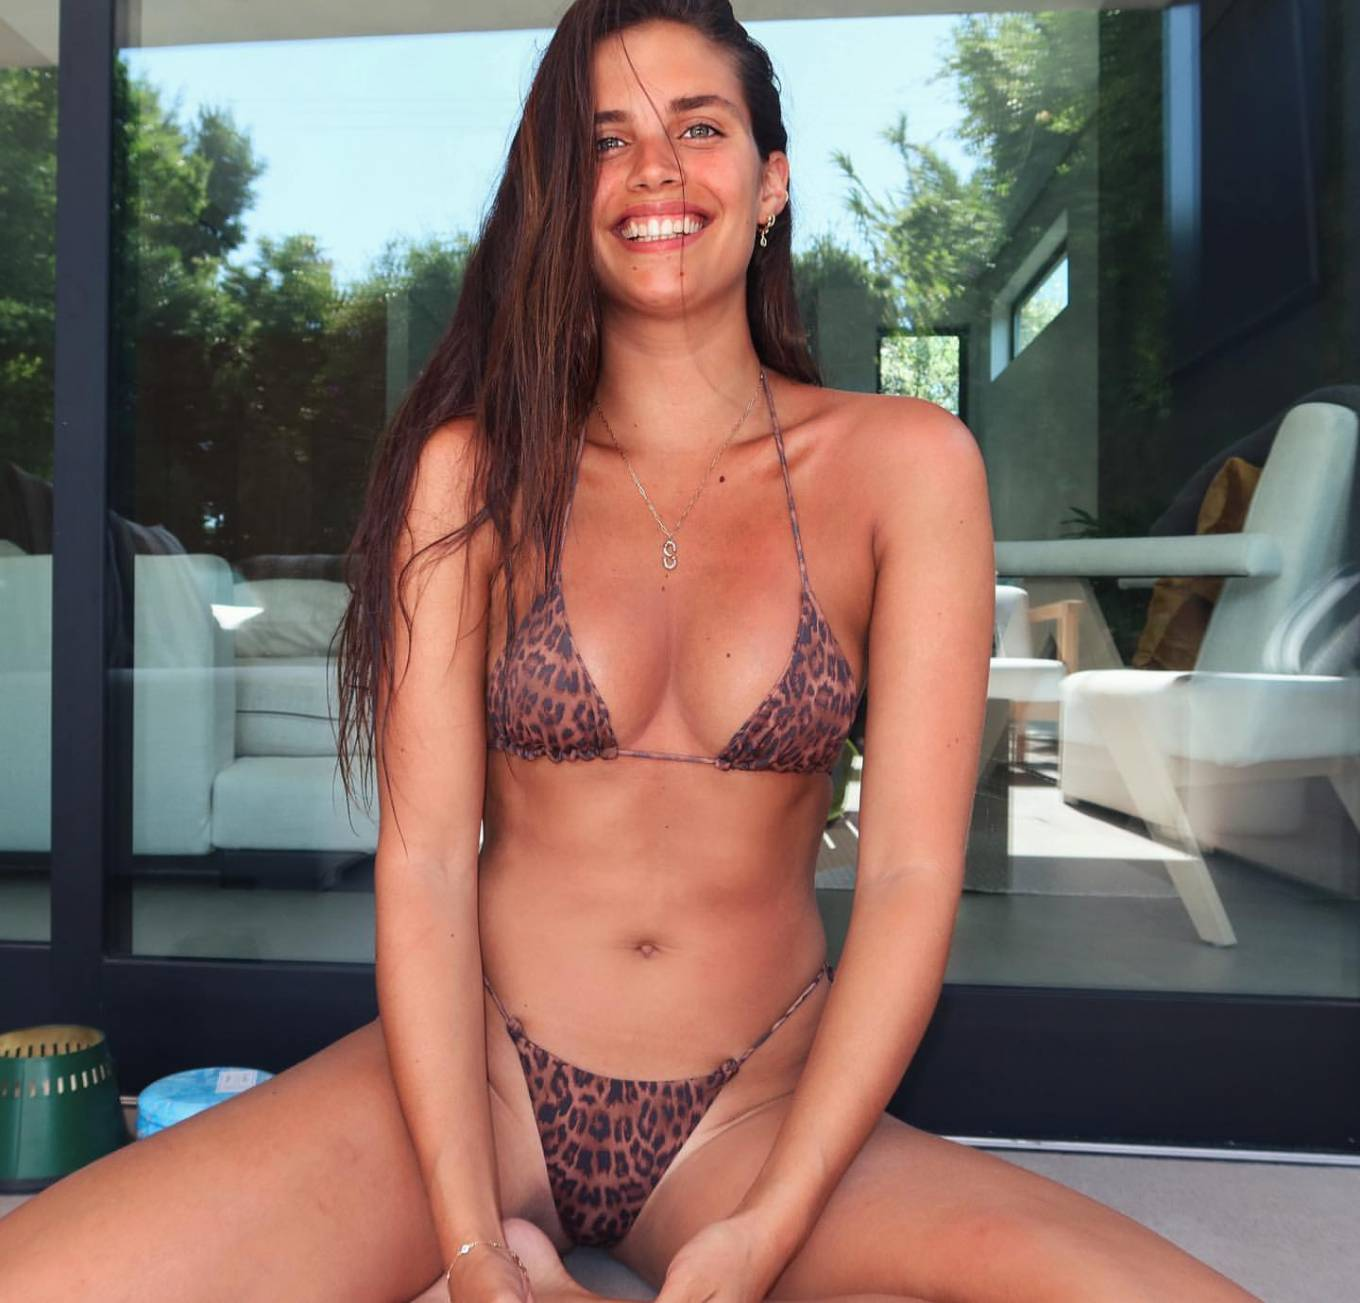 Sara Sampaio - Bikini - Social media